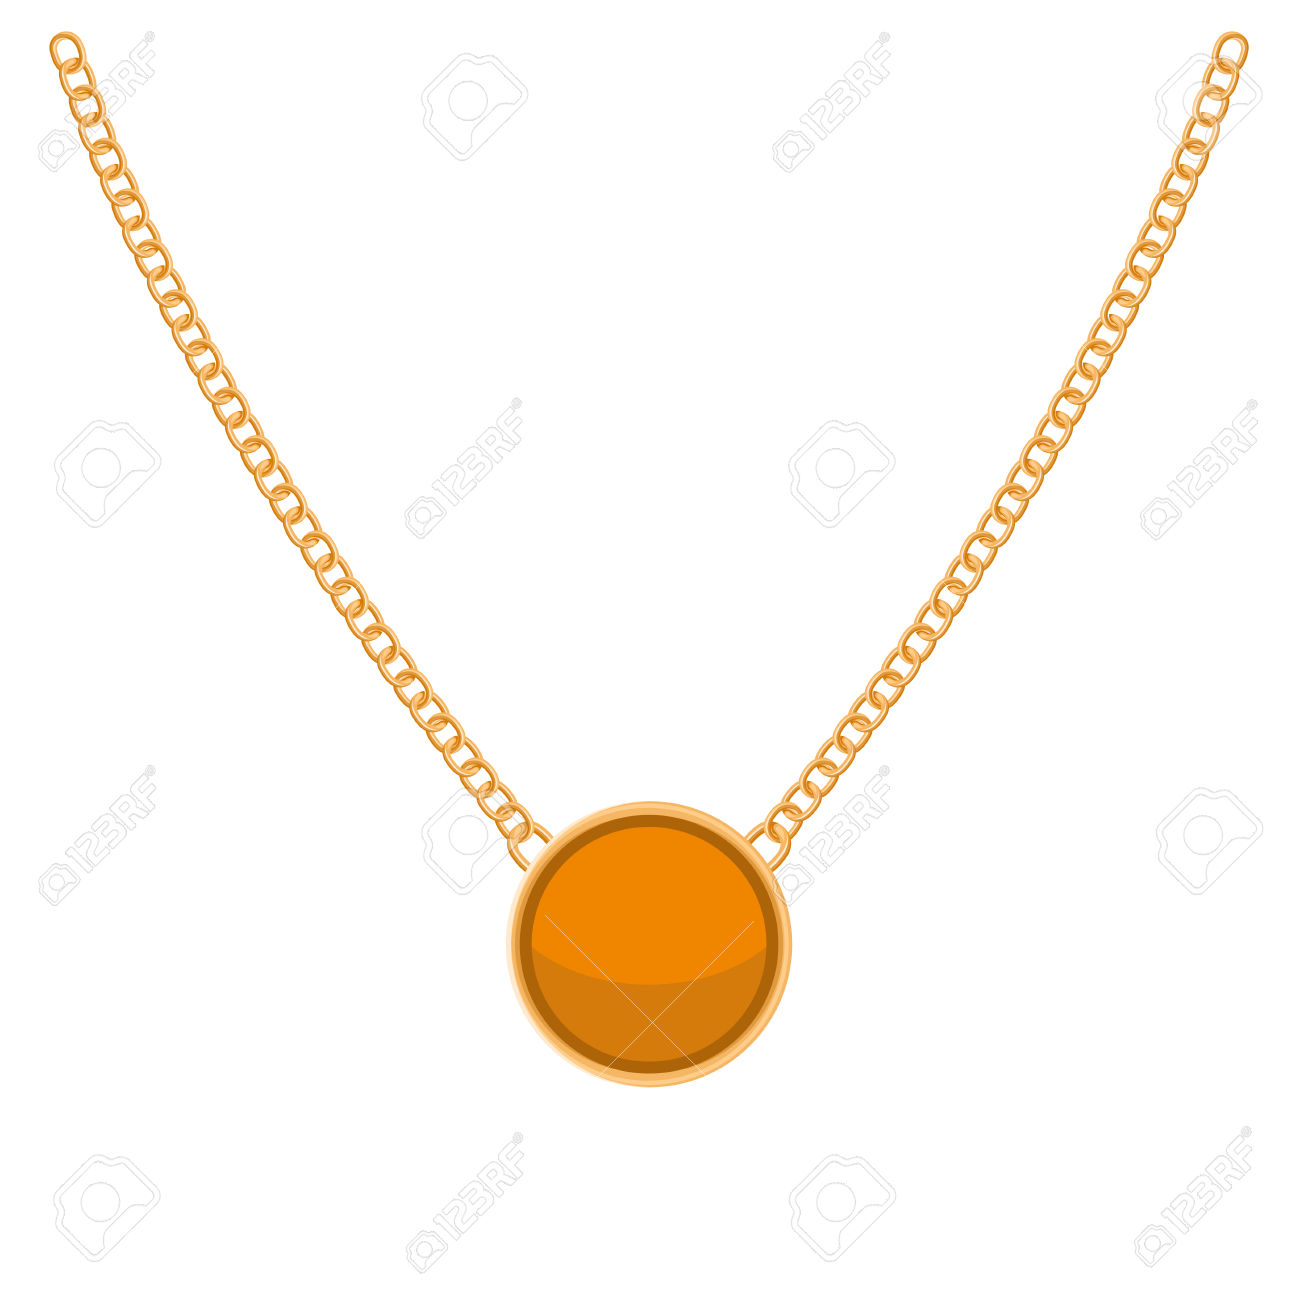 1300x1300 Necklace Clipart Gold Necklace